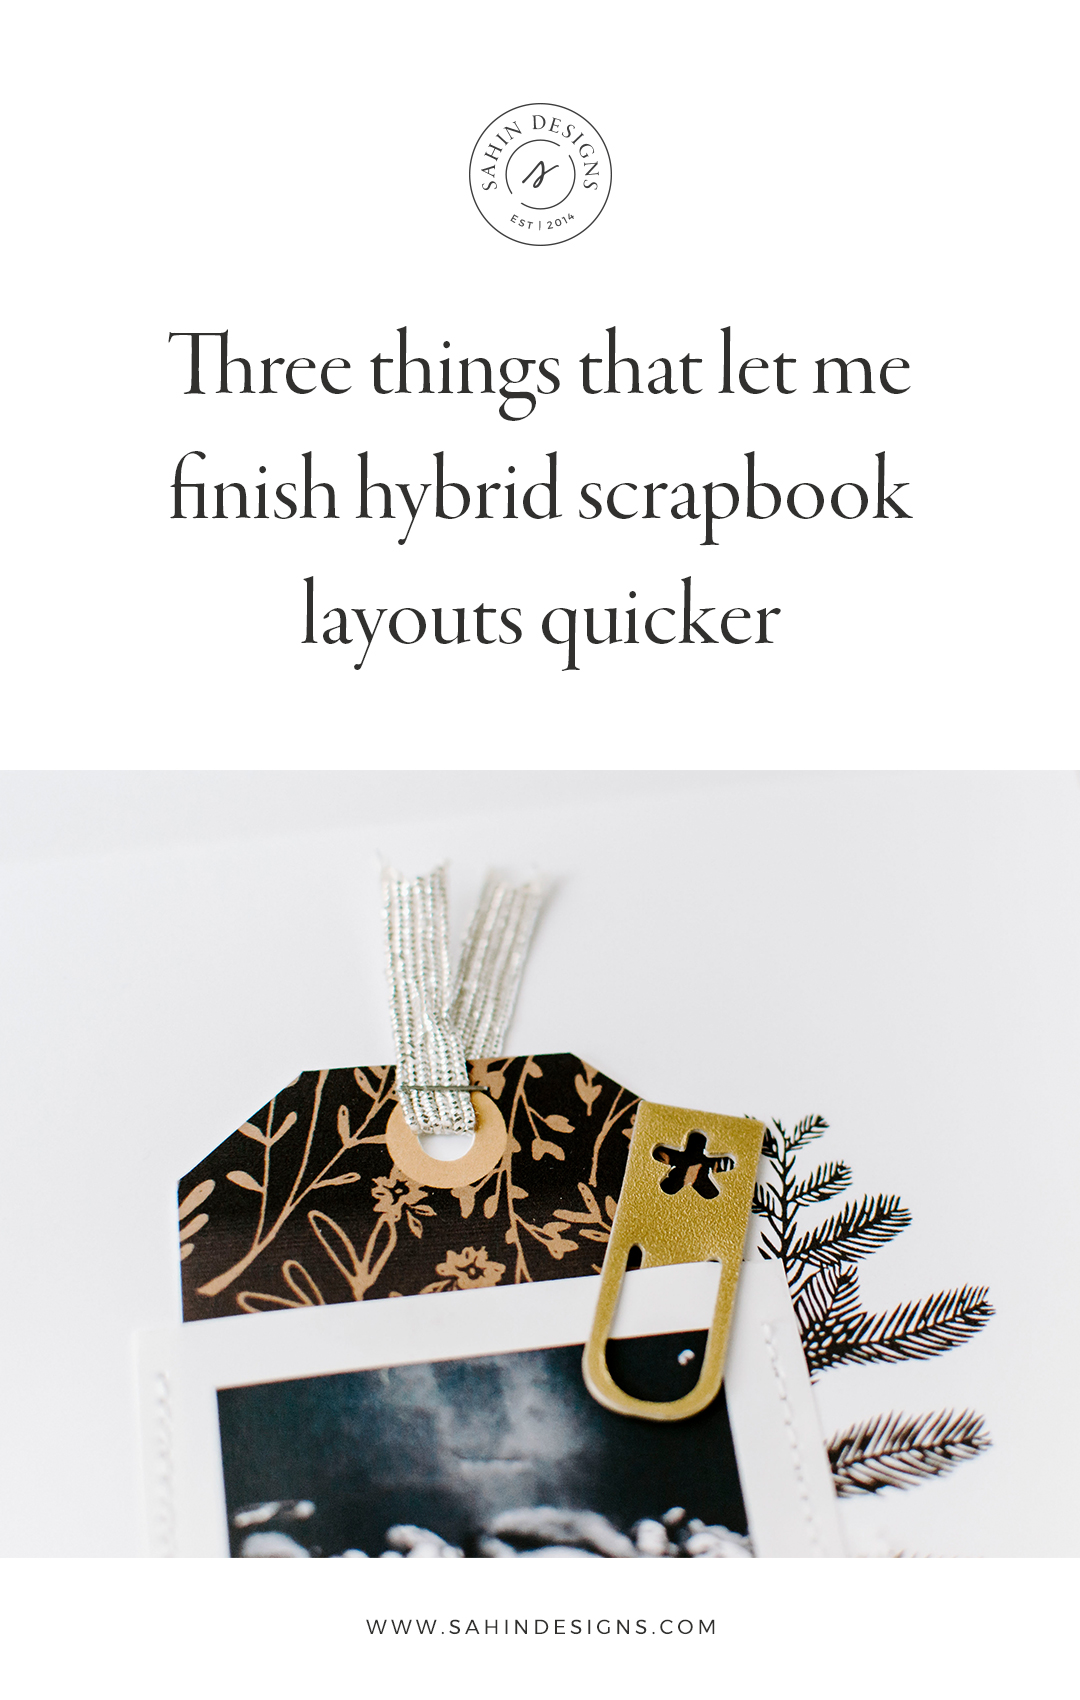 Three steps of finishing a hybrid scrapbook layout quick - Sahin Designs